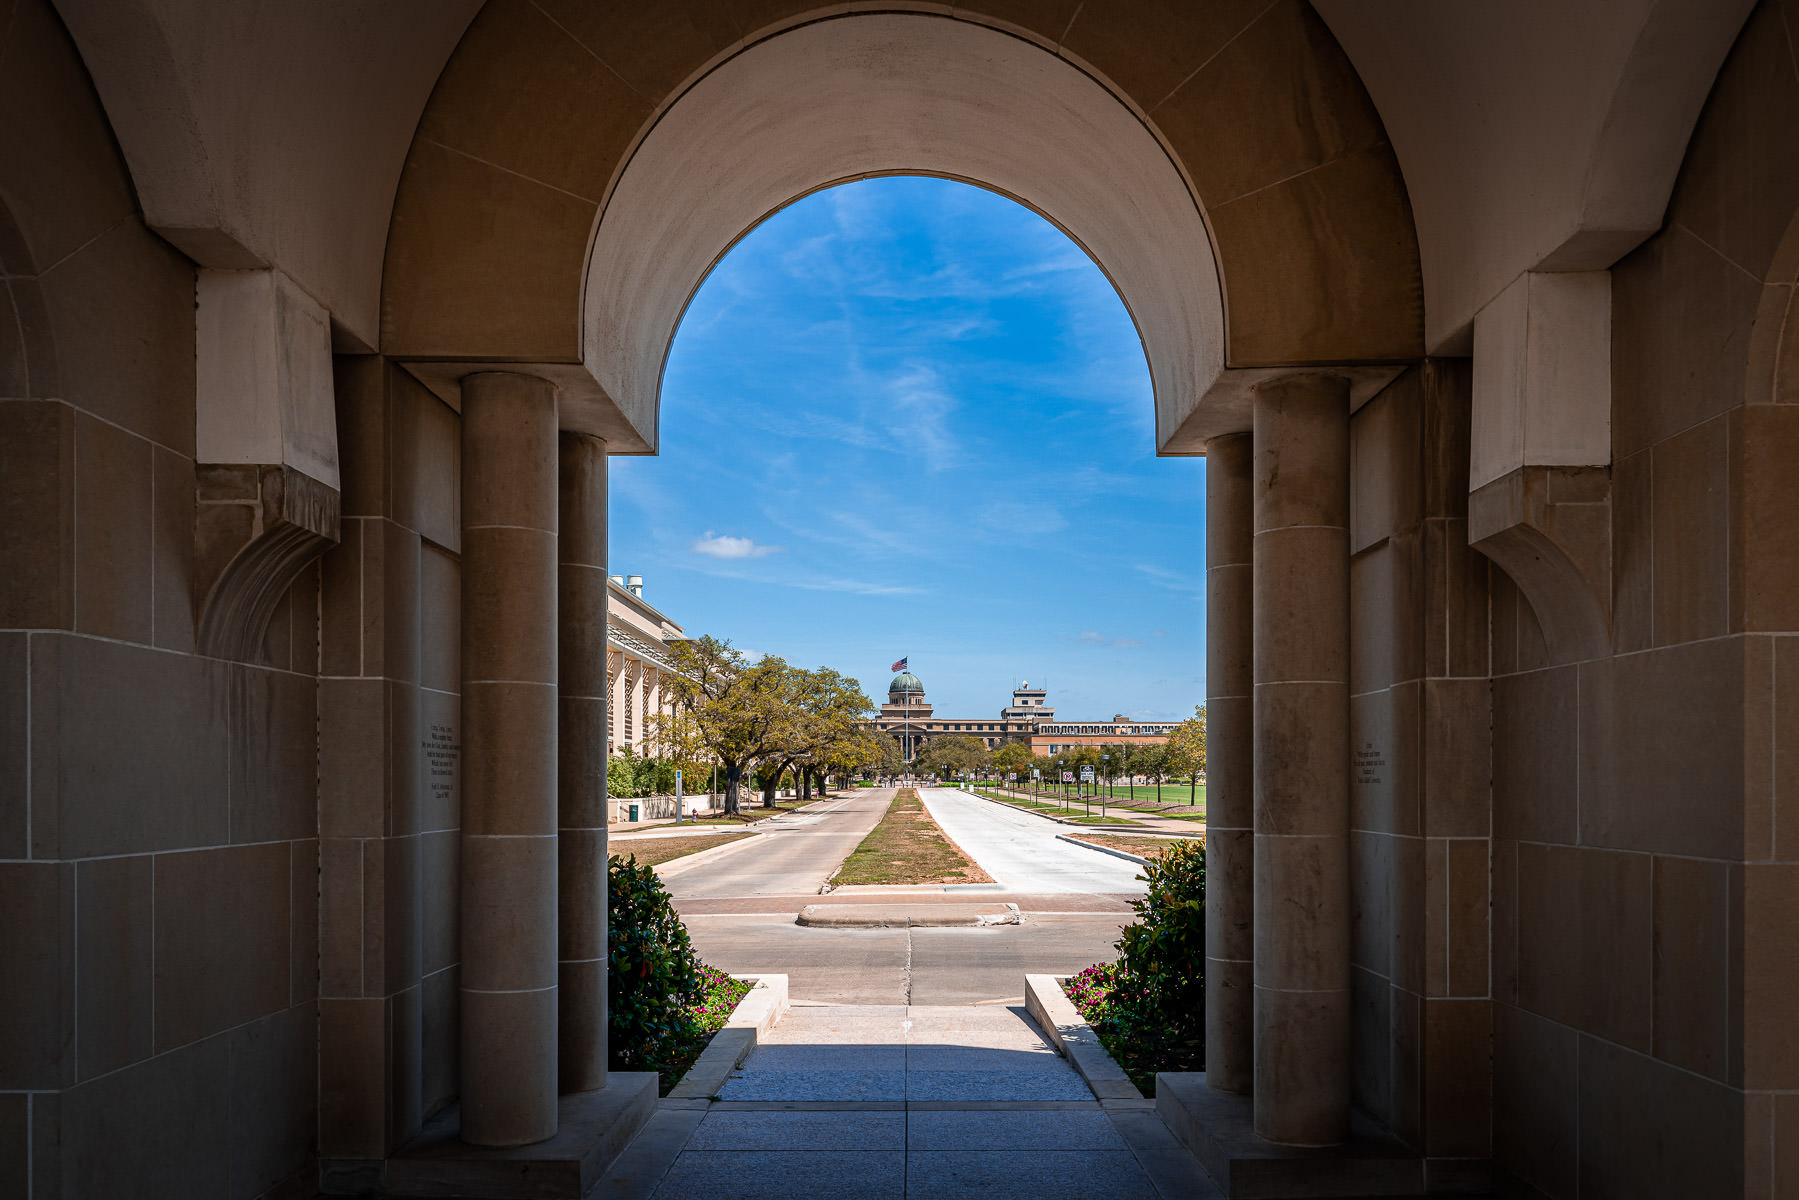 The Academic Building at Texas A&M University as seen from under Albritton Tower.